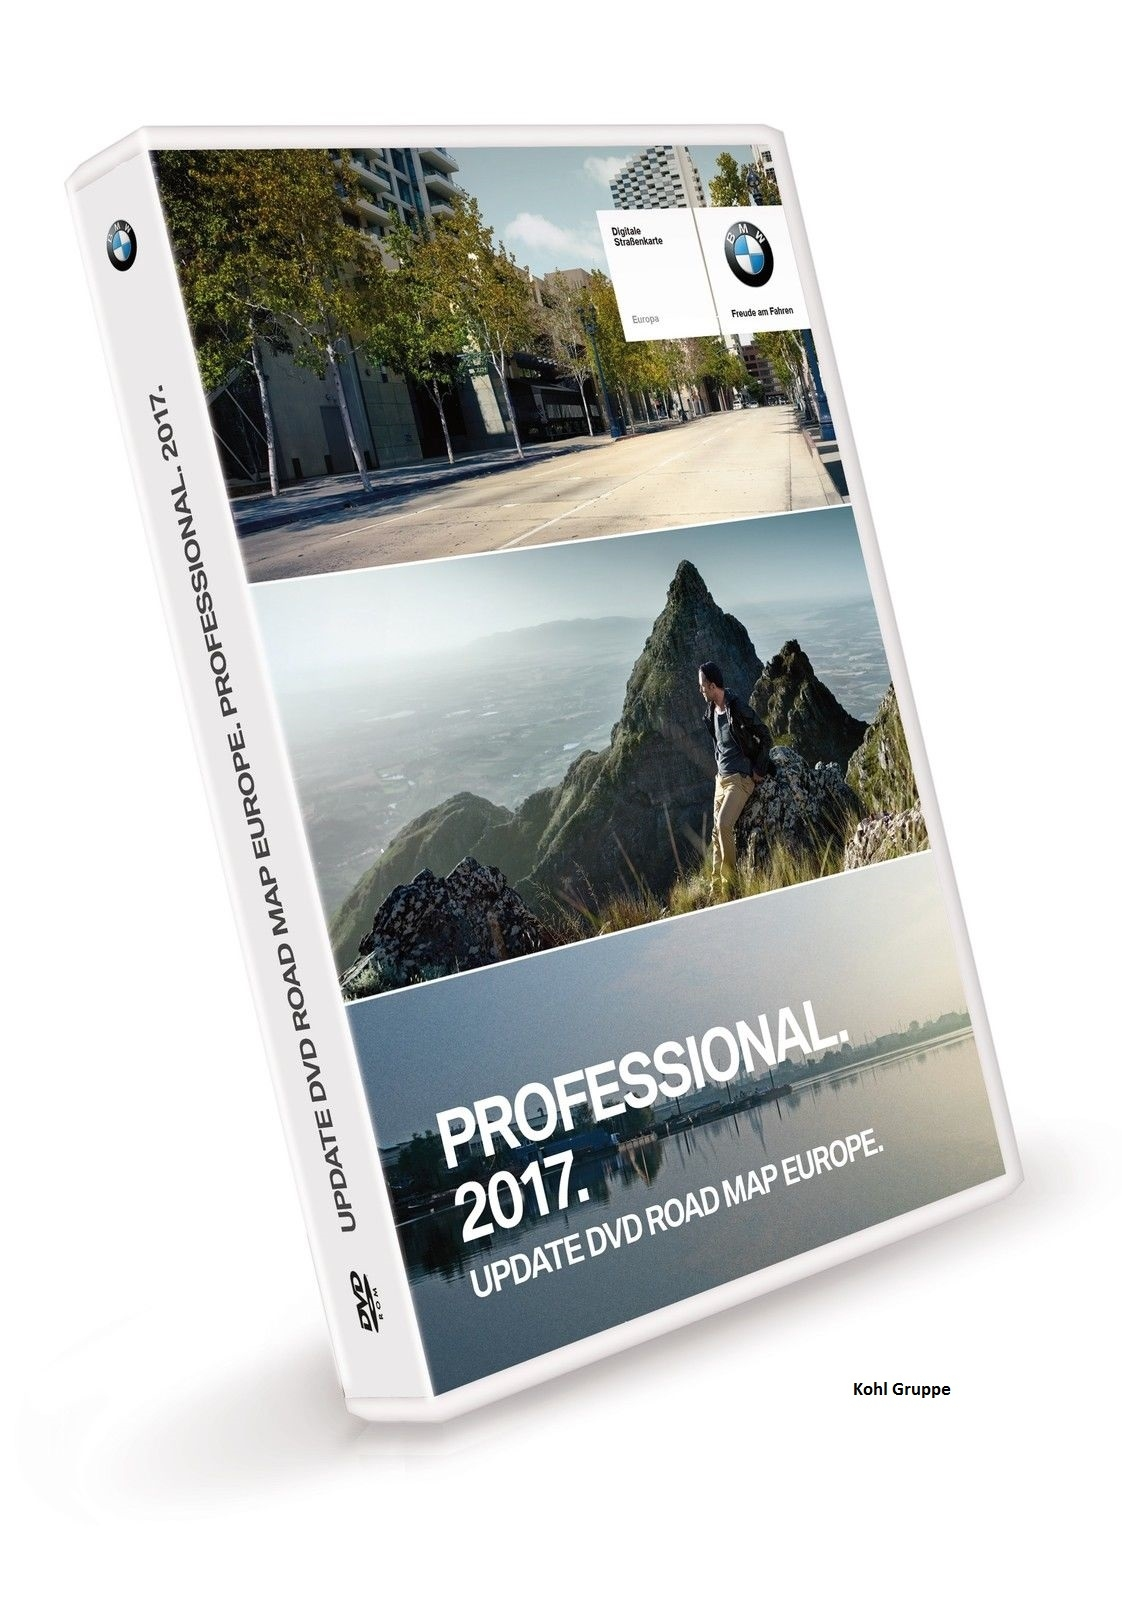 orig. BMW Navi Professional 2017 Update DVD Road Map Europa Europe